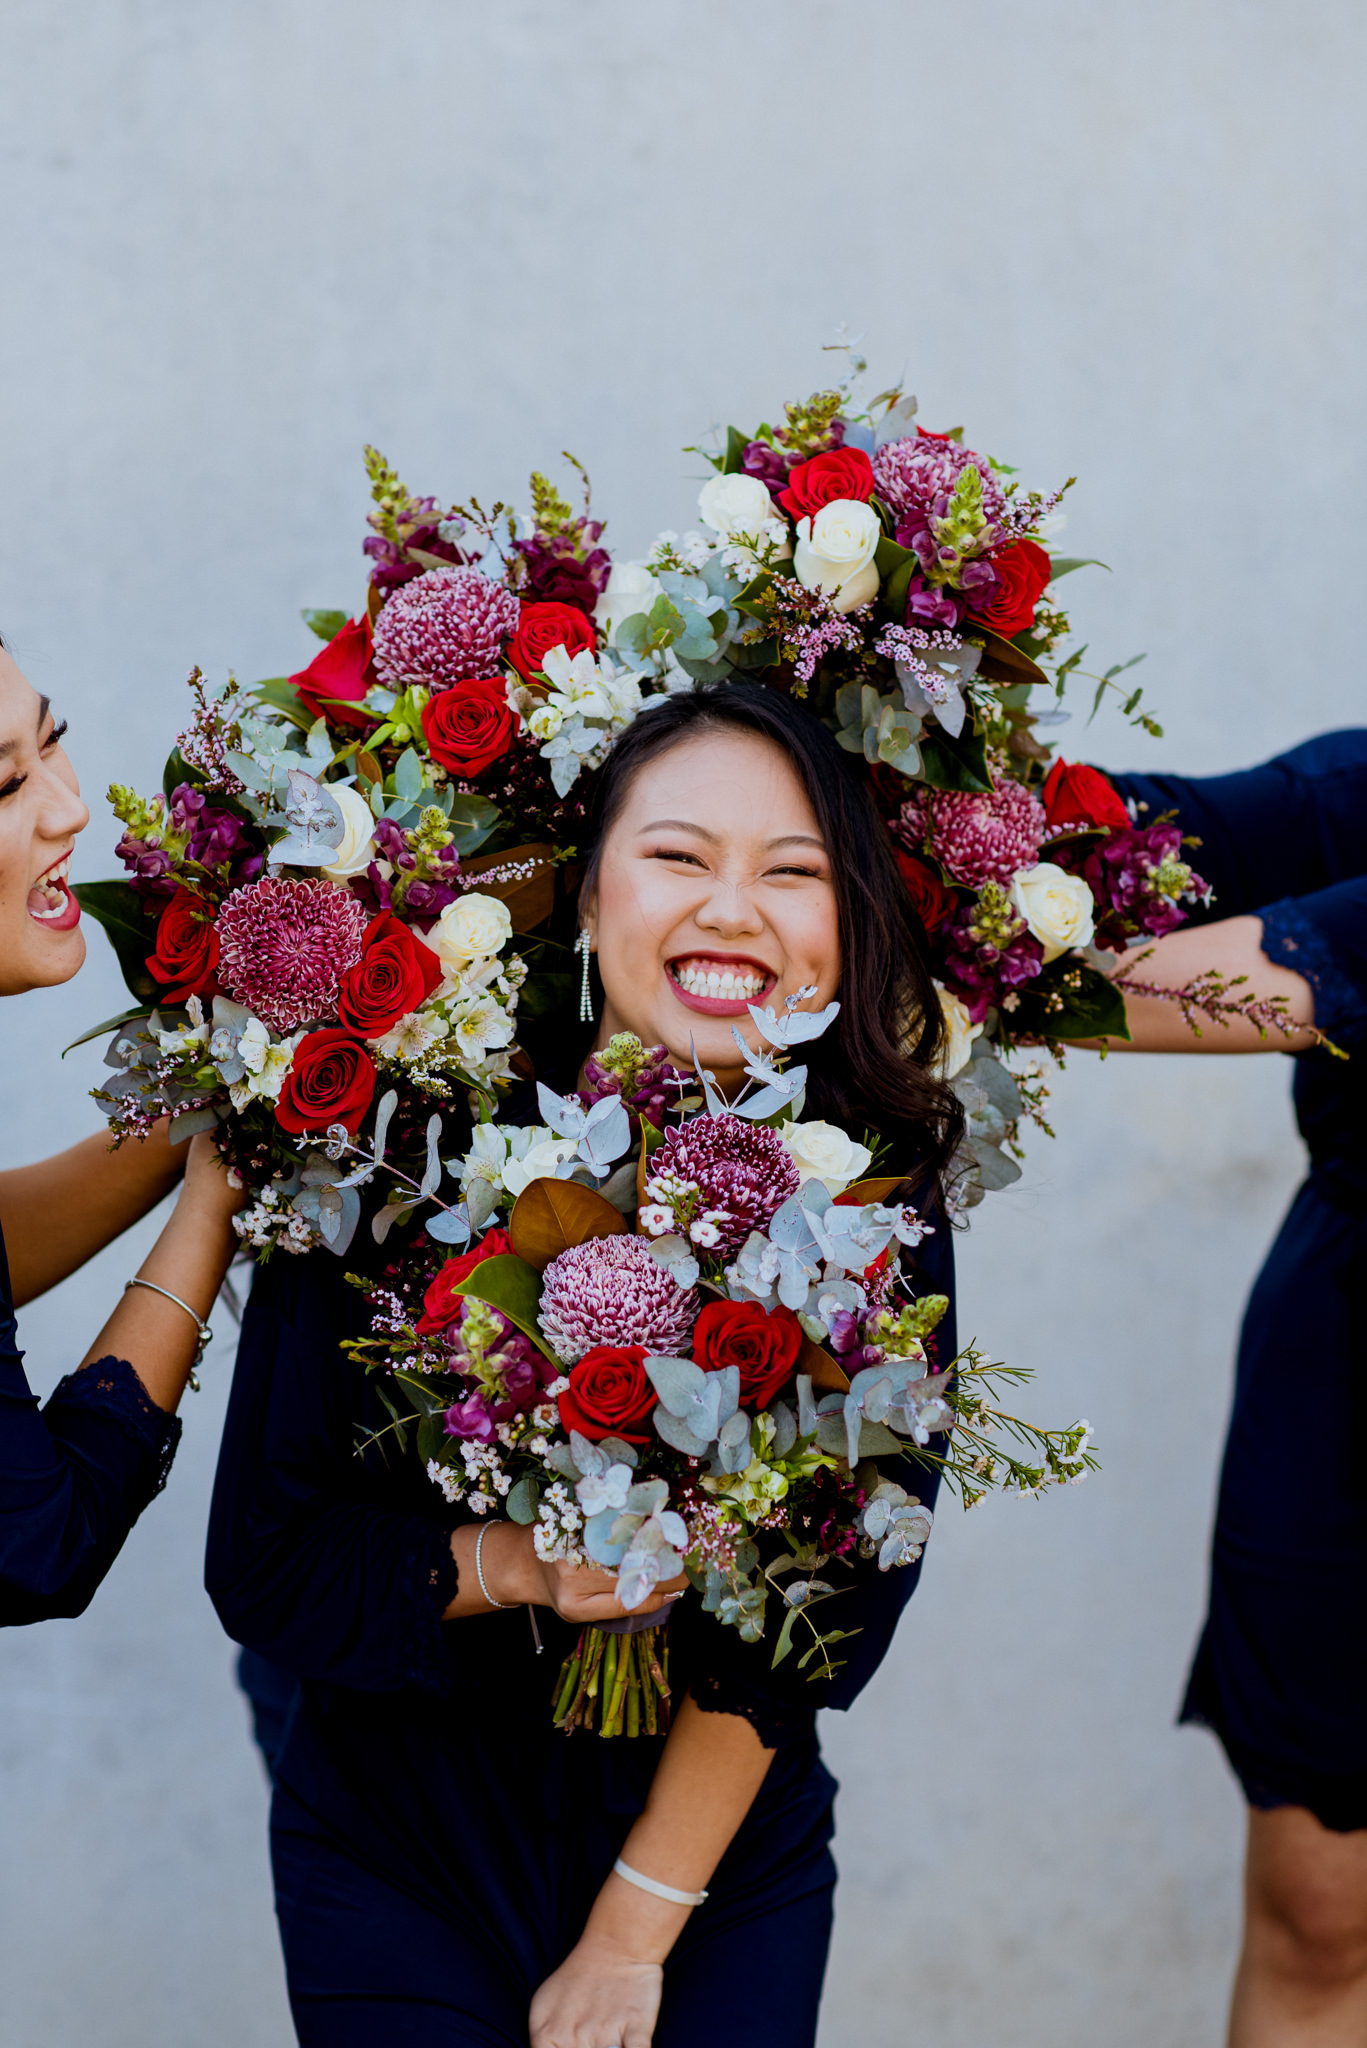 An asian girl smiles as her face is surrounded by wedding bouquets